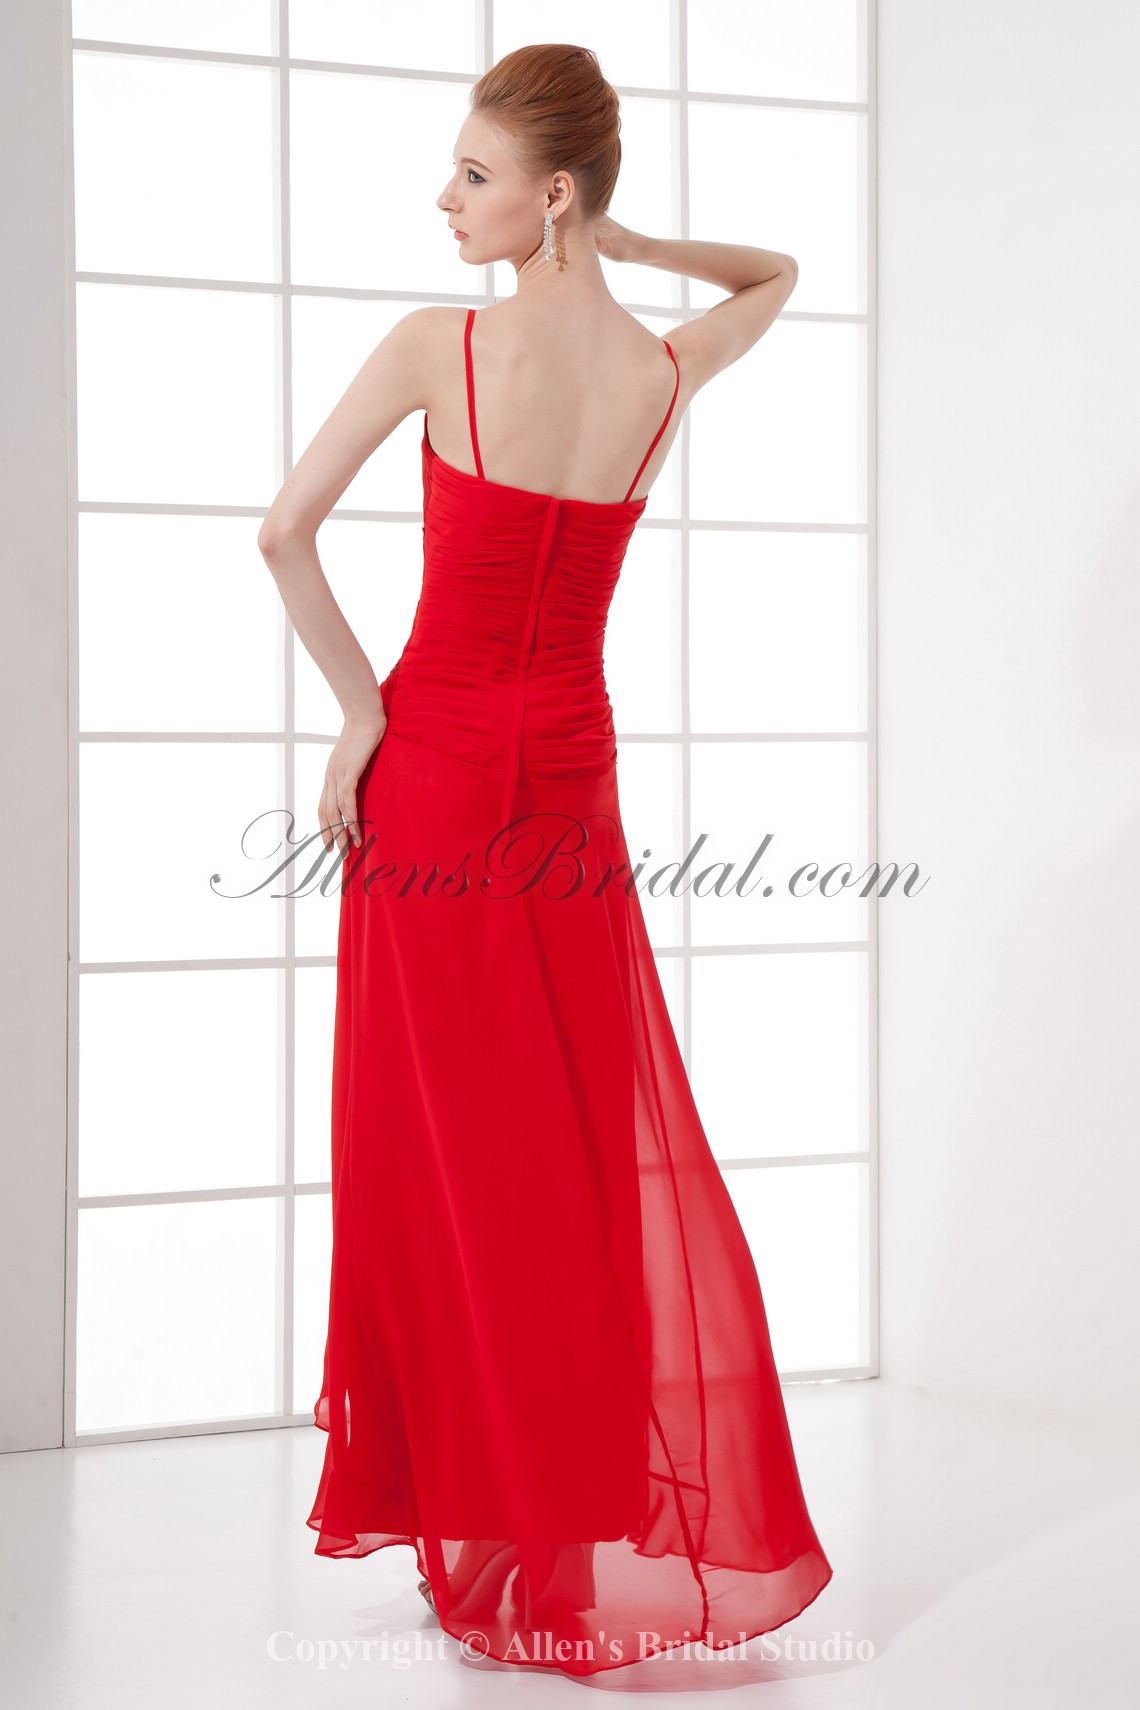 /101-808/chiffon-spaghetti-neckline-a-line-asymmetrical-embroidered-prom-dress.jpg